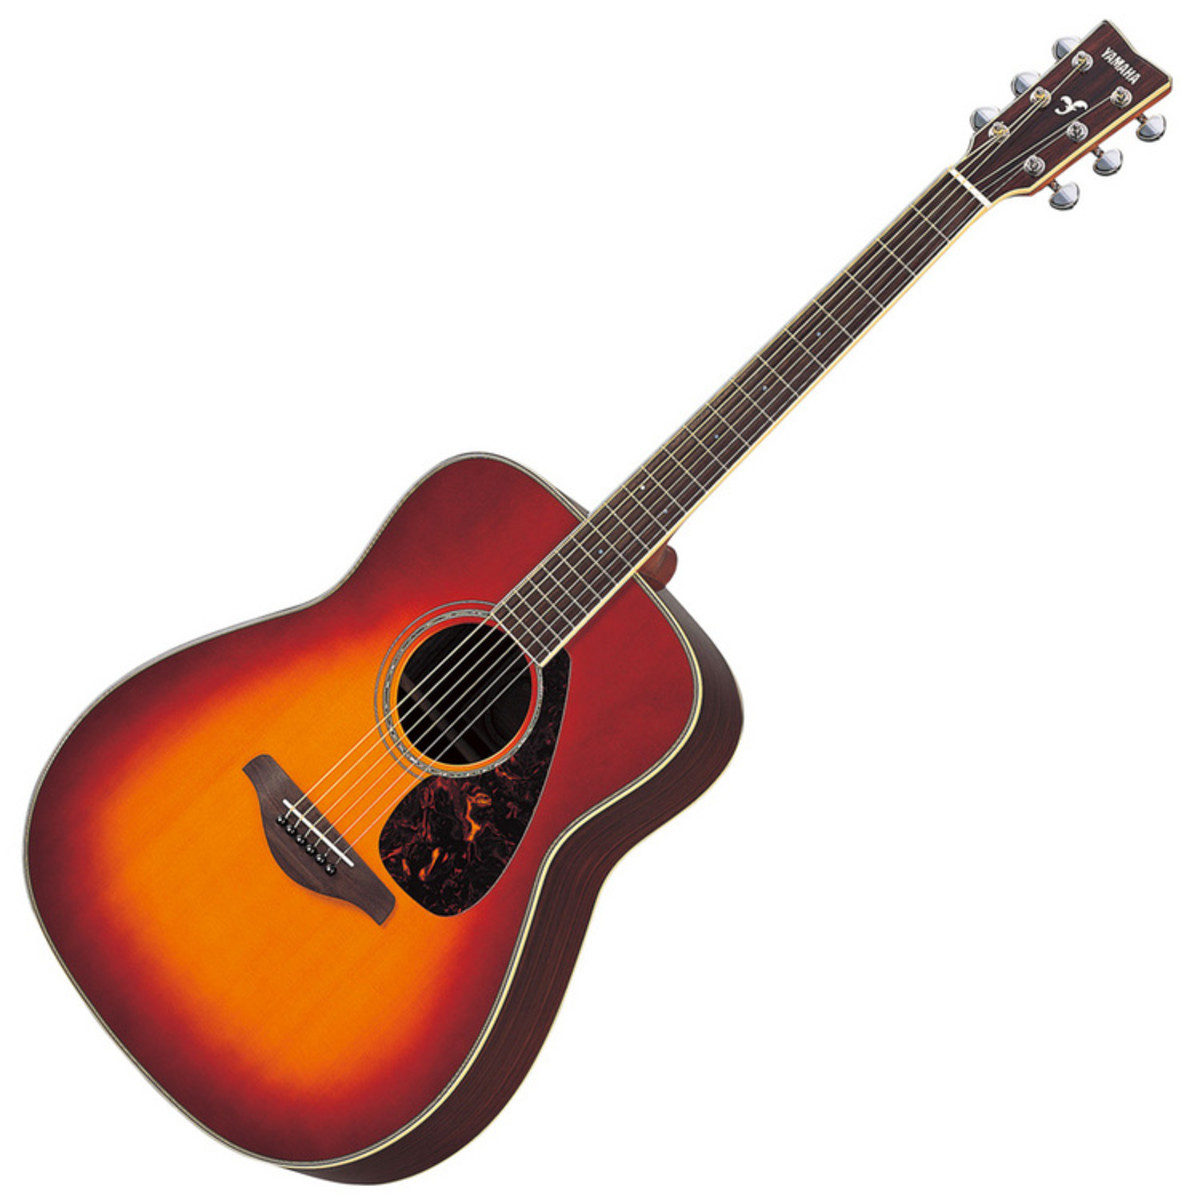 yamaha fg730s guitar compare prices at foundem